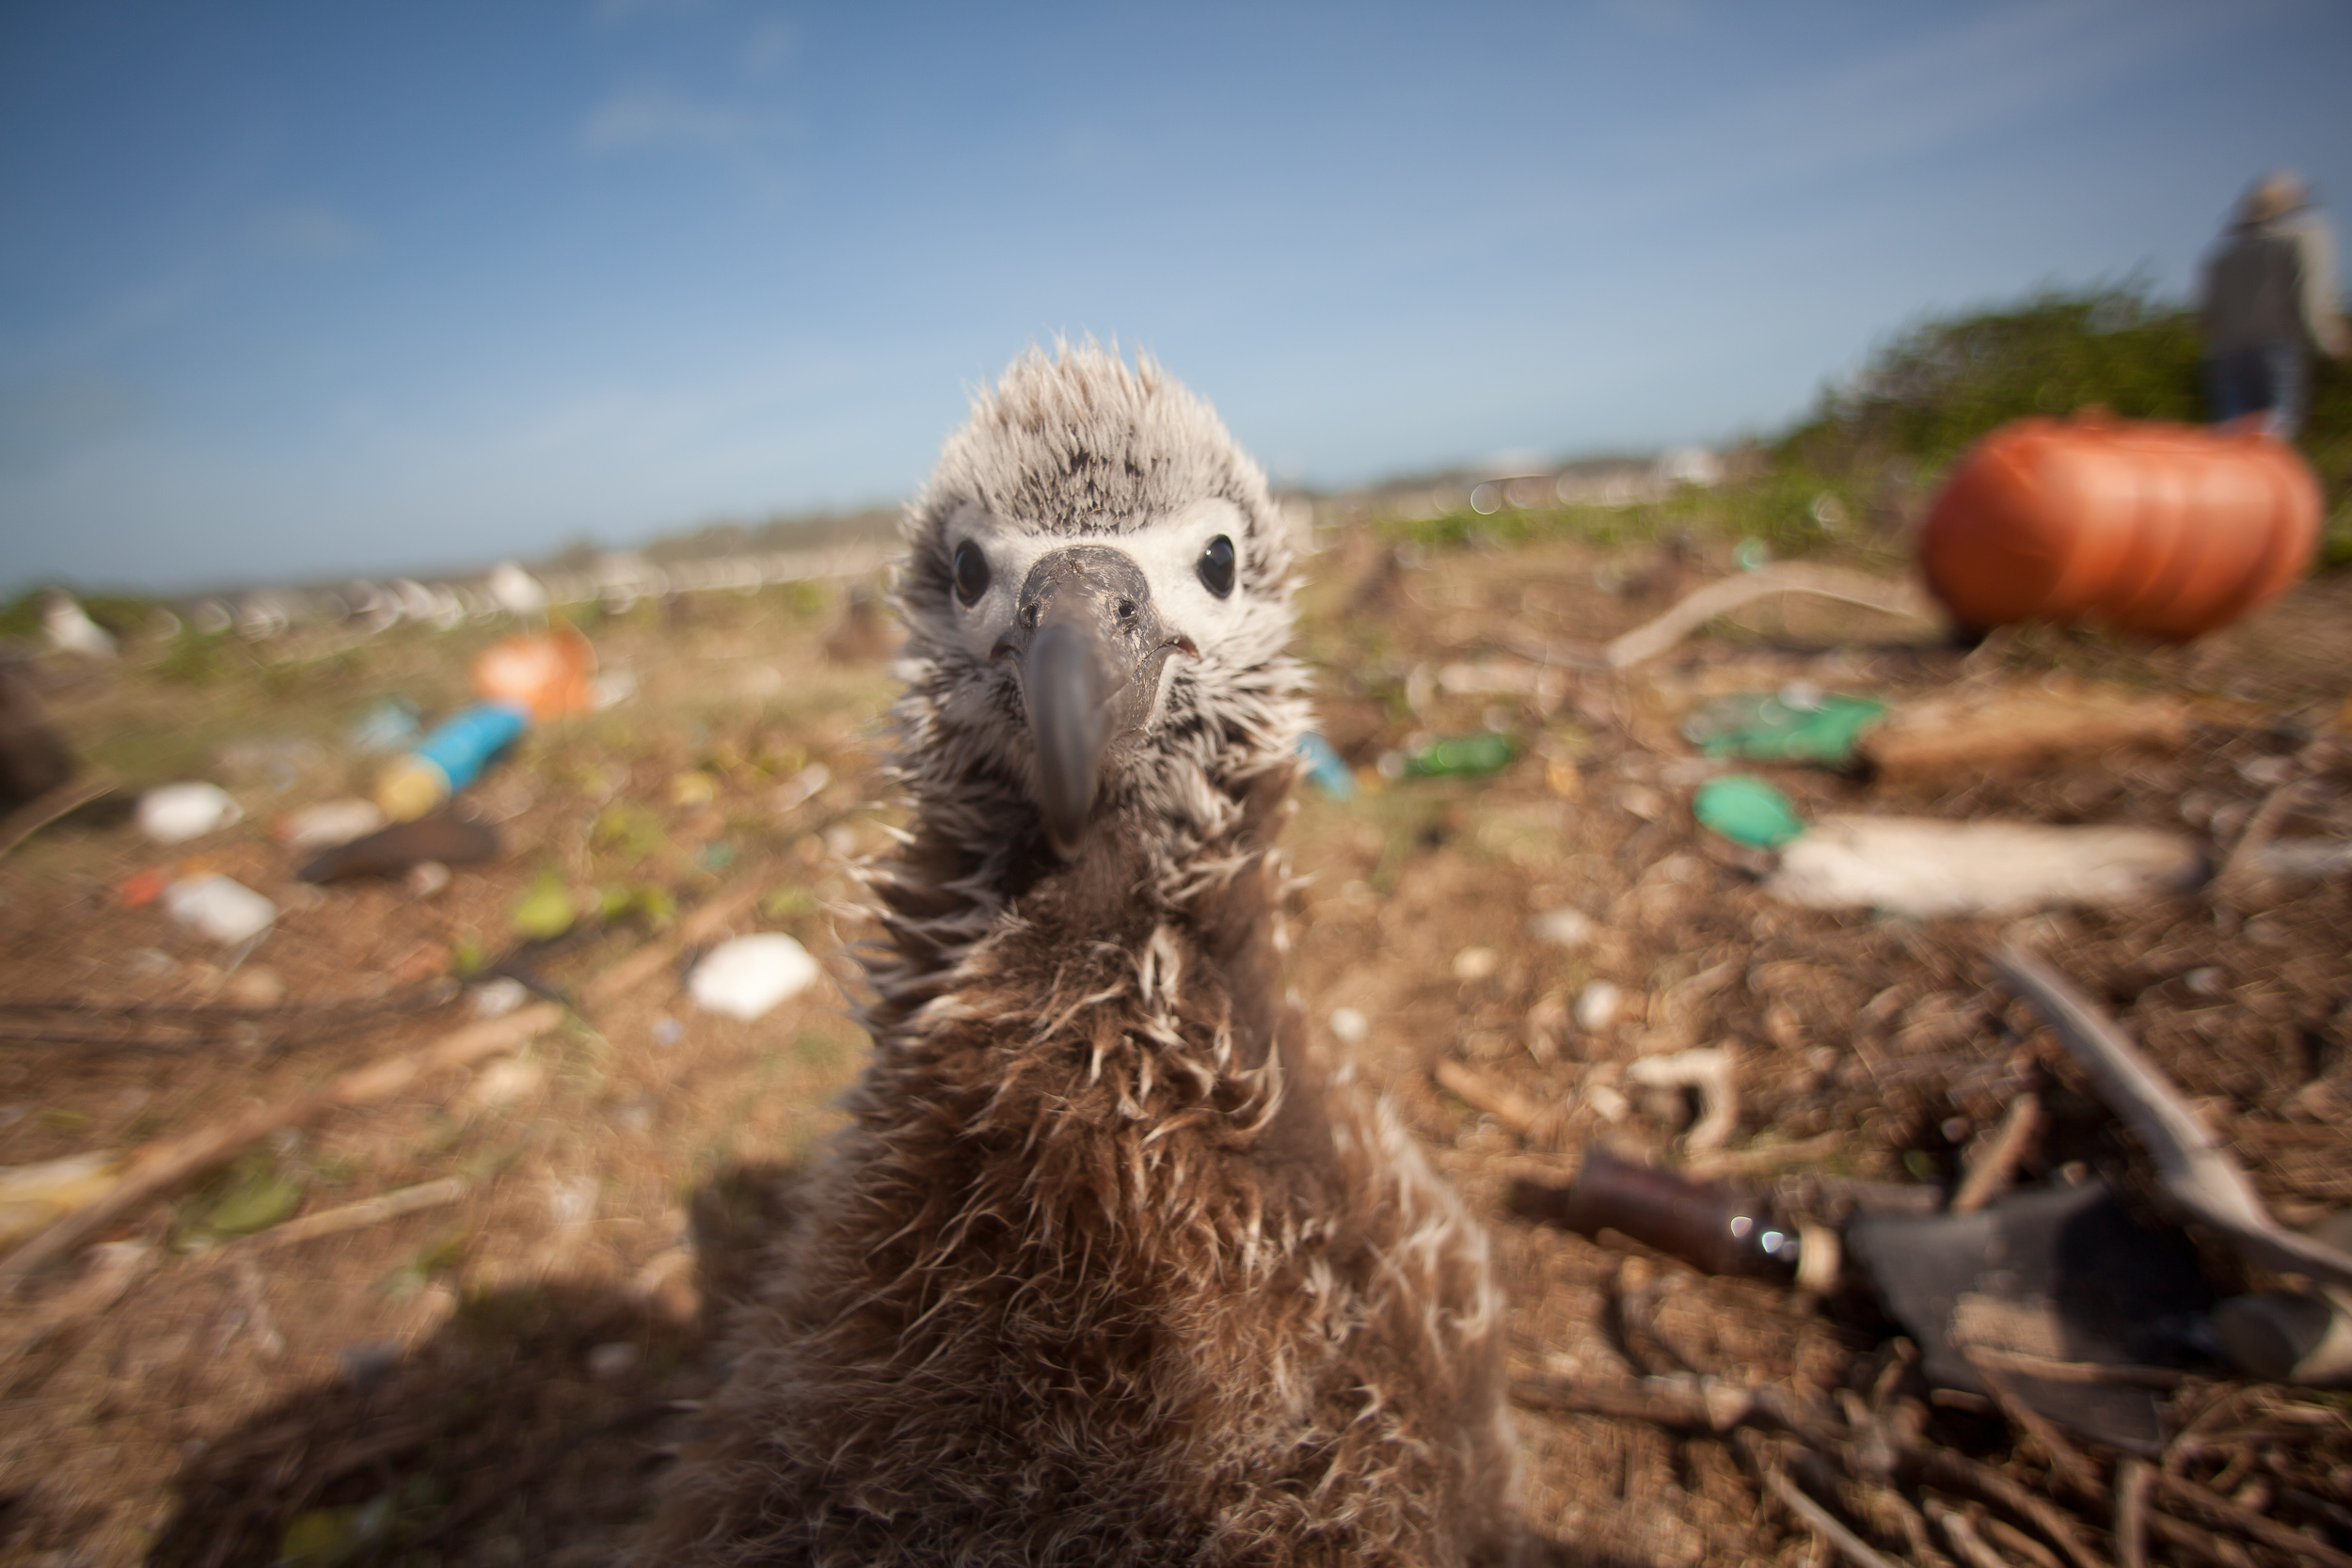 An albatross chick is surrounded by garbage in its native environment.   Kris Krüg/Flickr  (CC BY-SA 2.0)